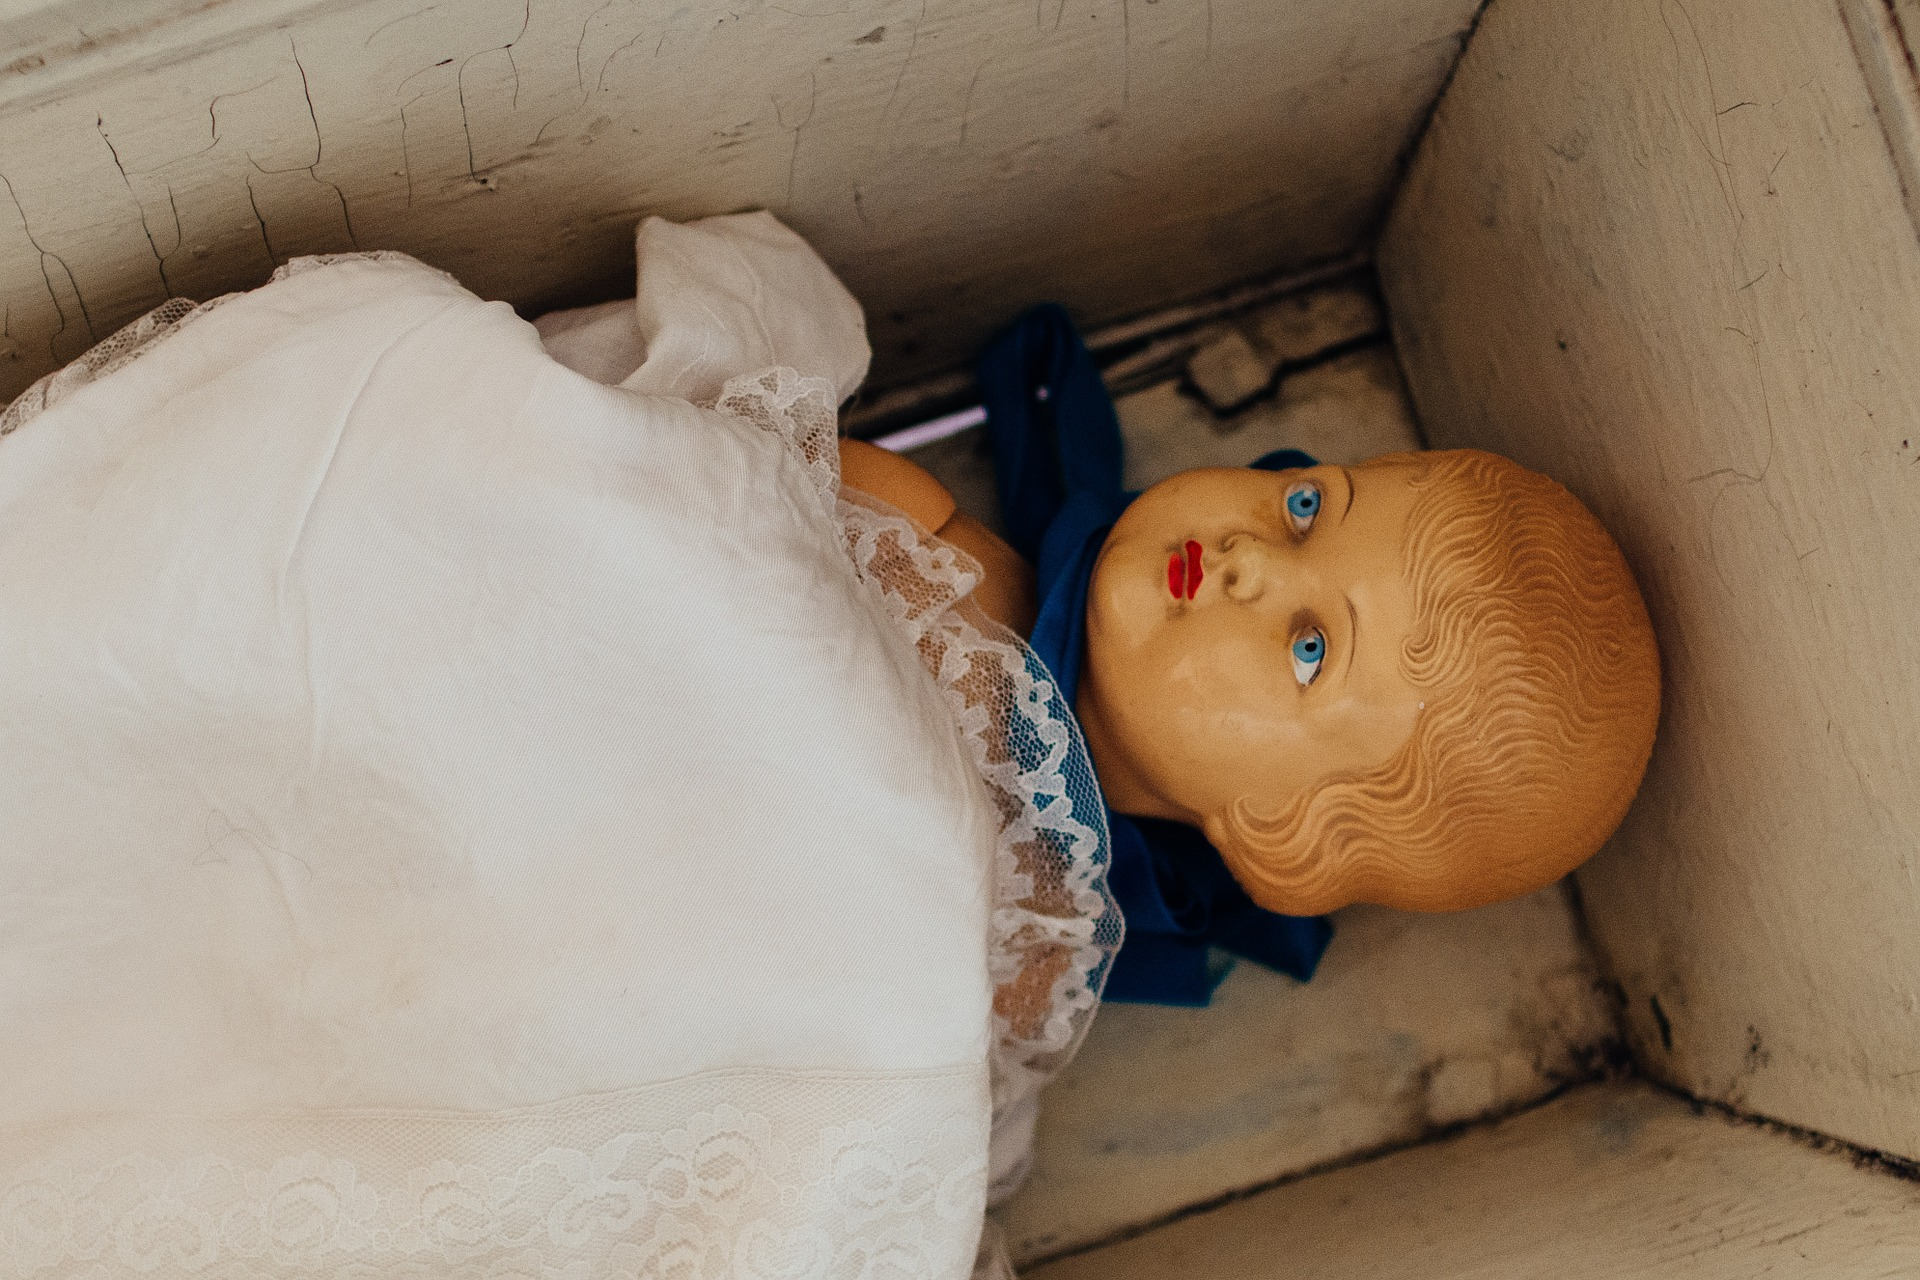 baby-doll-1209890_1920-2